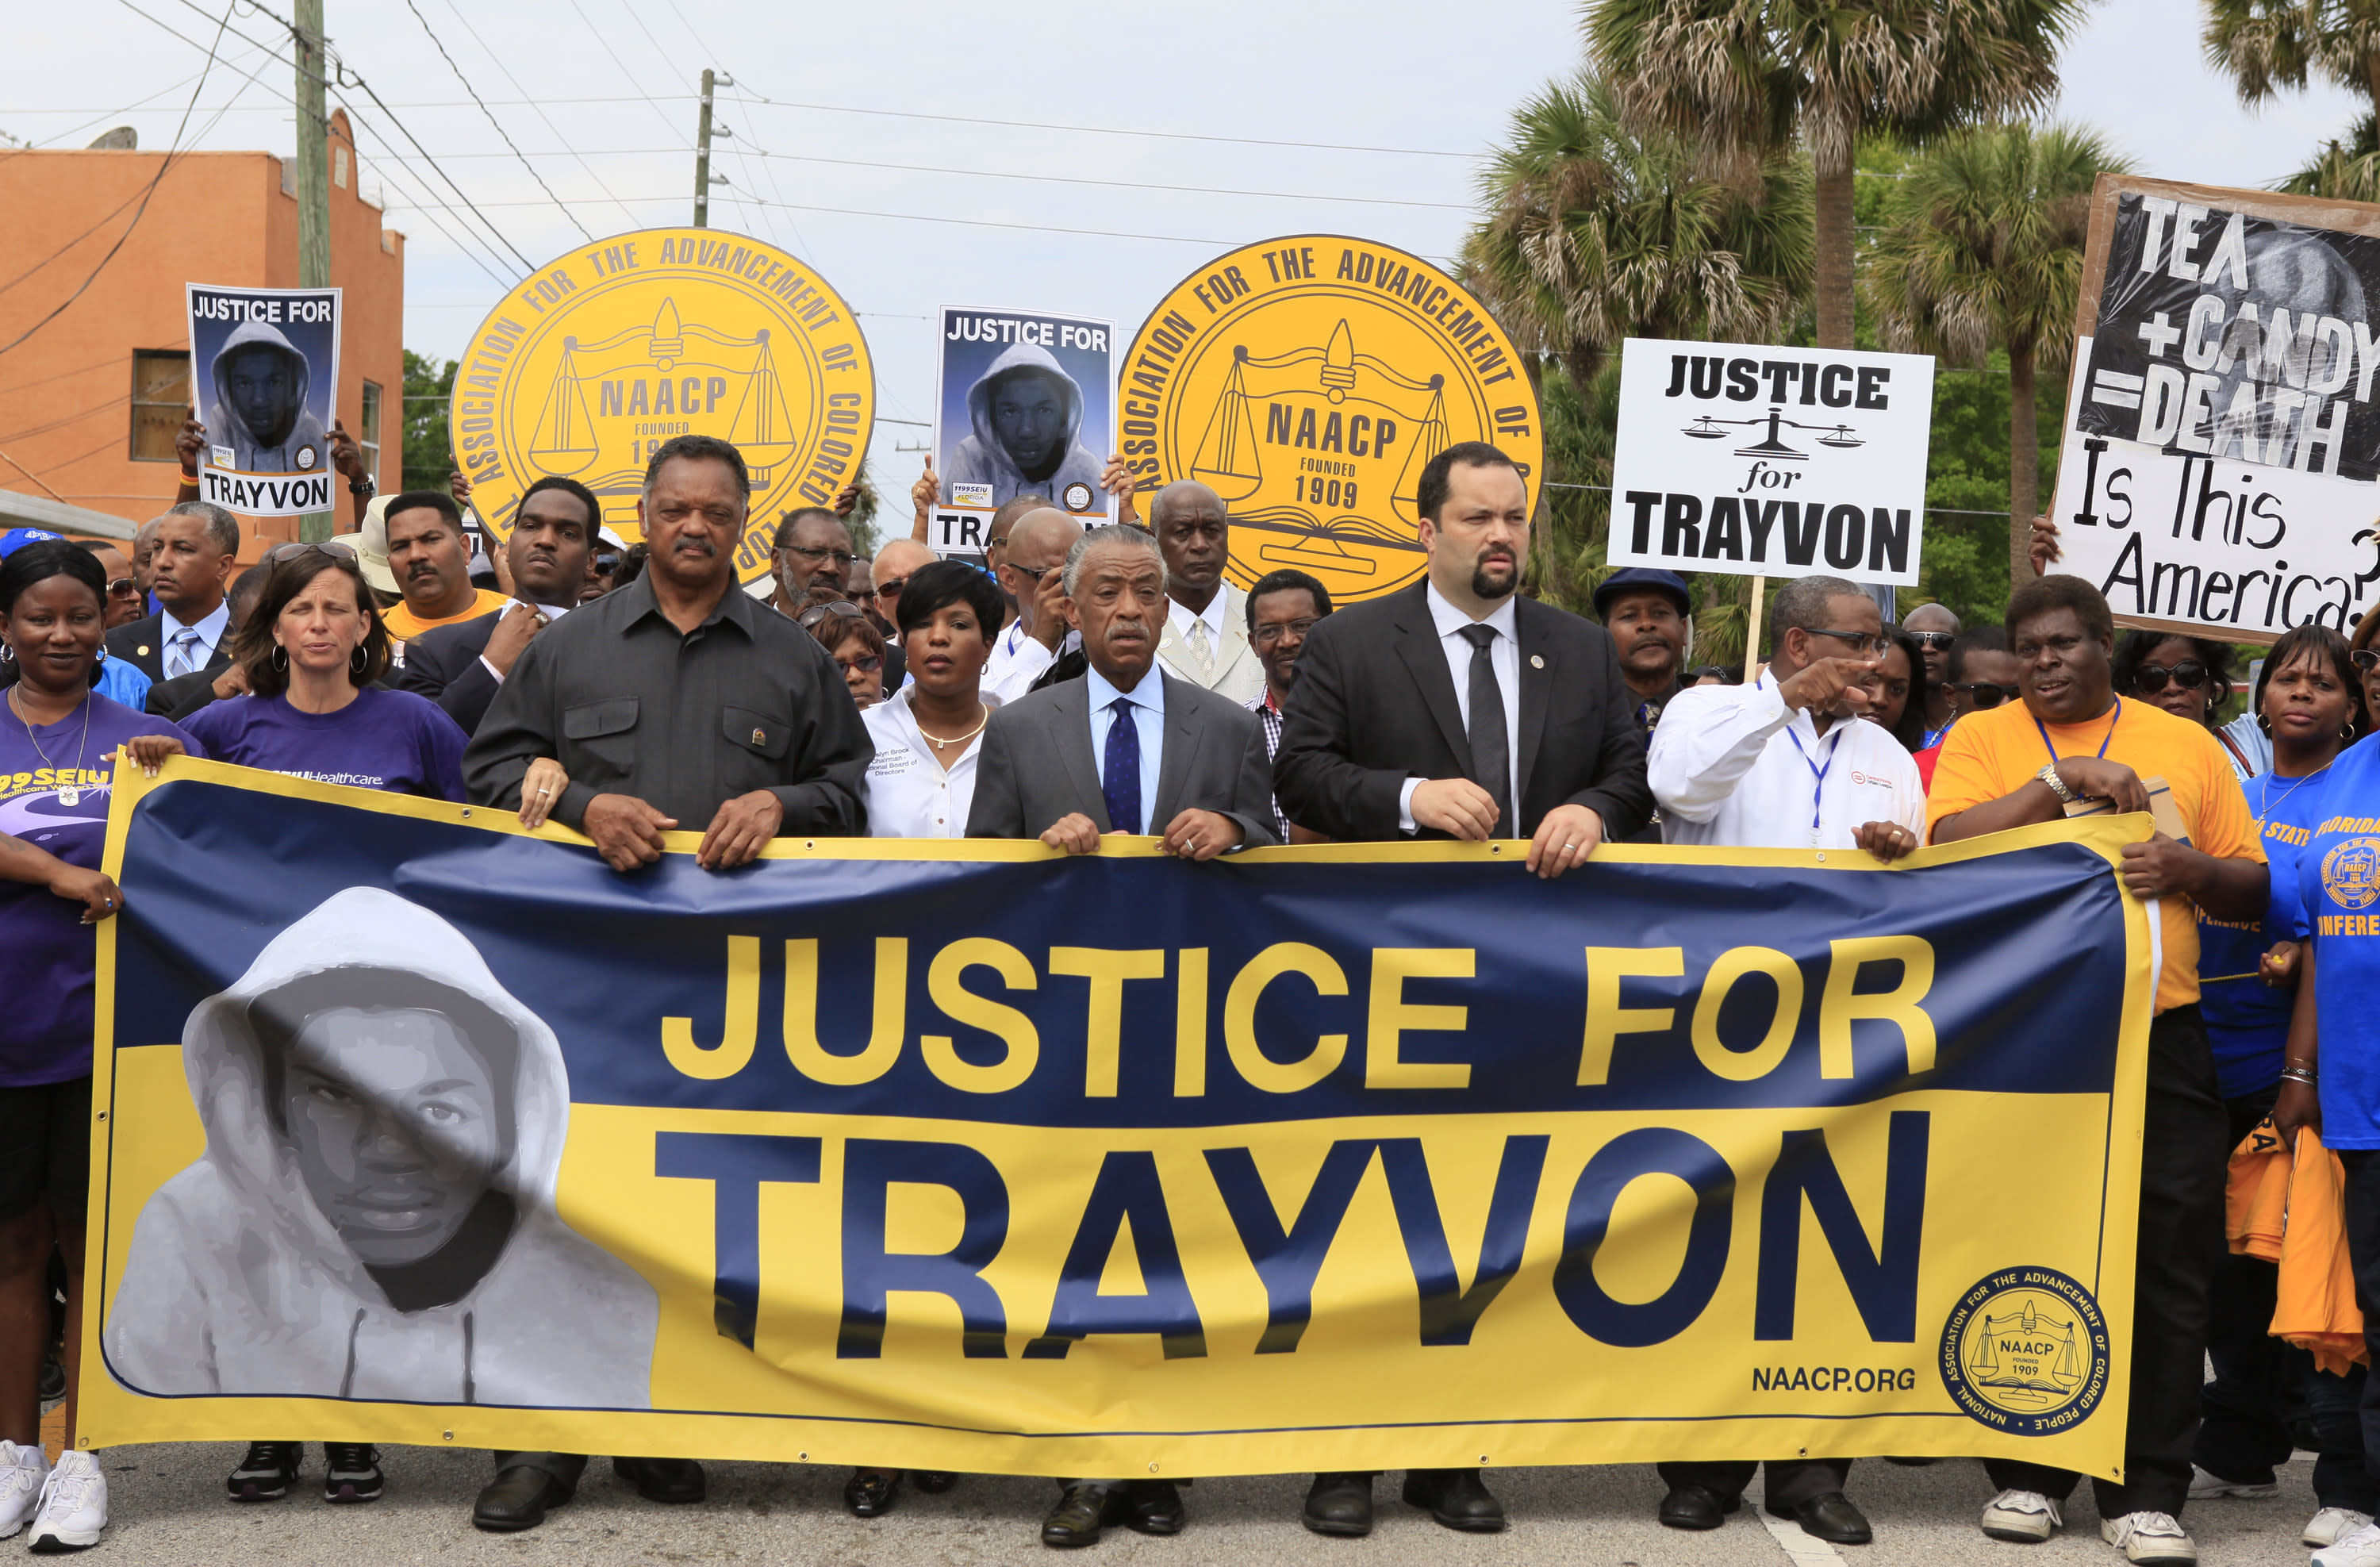 """From left, Rev. Jesse Jackson, Rev. Al Sharpton, and Benjamin Jealous, President of the NAACP lead the march for slain Florida teenager Trayvon Martin on Saturday, March 31, 2012 in Sanford, Fla. Protesters carried signs, chanted """"Justice for Trayvon,"""" and clutched the hands of their children while they walked from Crooms Academy of Information Technology, the county's first high school for black students, to the Sanford Police Department. The march was organized by the NAACP and was one of several taking place over the weekend. Martin was shot to death by 28-year-old George Zimmerman on Feb. 26 as he walked from back from a convenience store to his father's fiancée's home in a gated community outside Orlando. (AP Photo/Julie Fletcher)"""